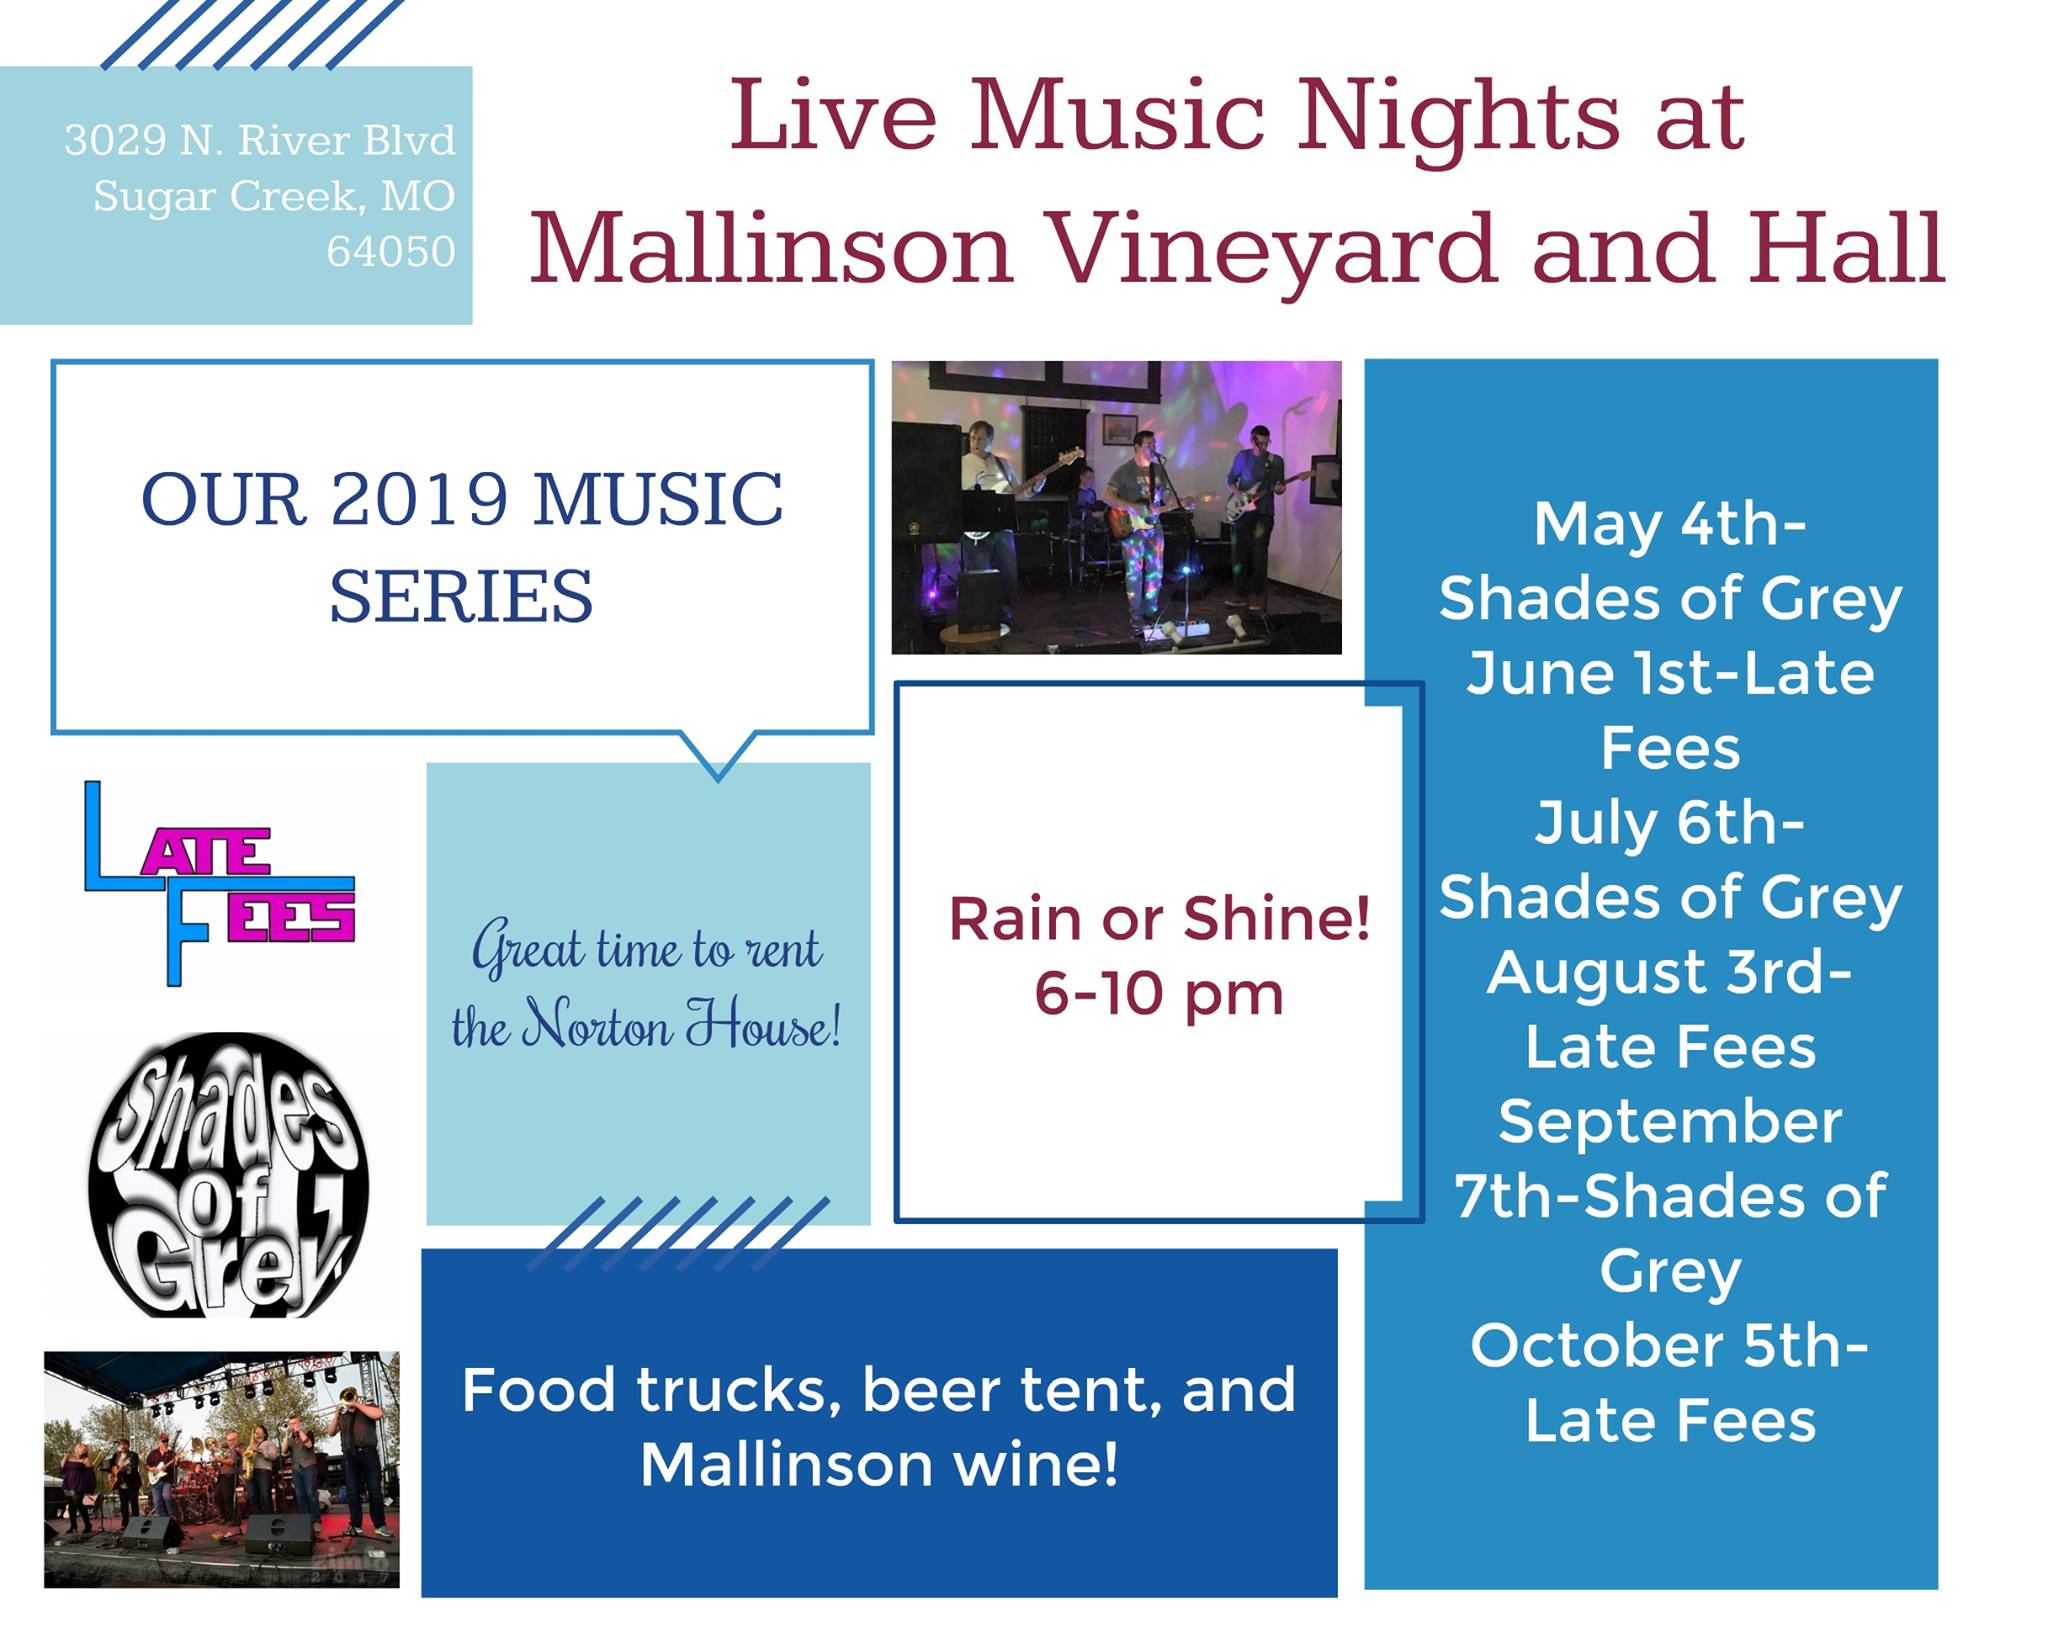 Music Events at Mallinson Vineyard and Hall - Sugar Creek MO.jpg